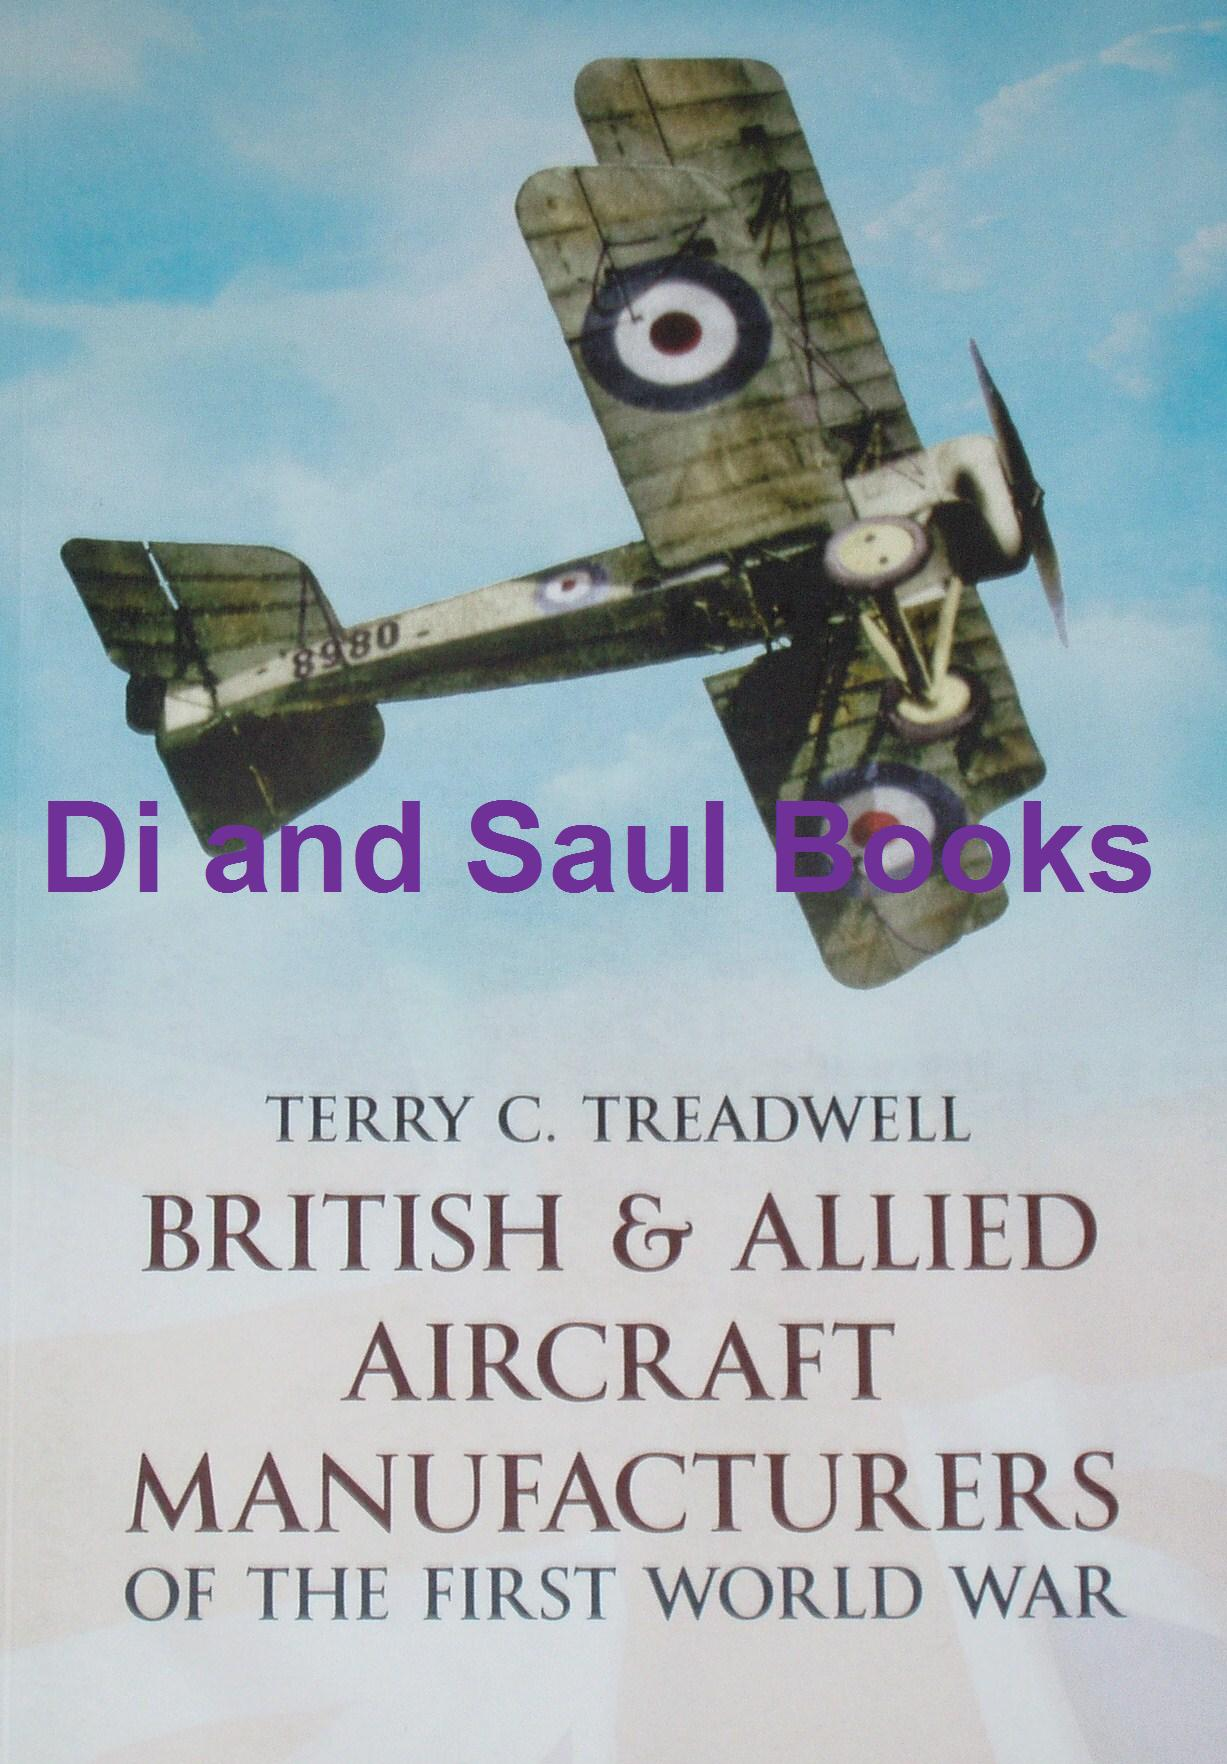 flying for the allies in the first world war World war i transformed early airplanes such as the sopwith camel and  flying  ace of the war by shooting down 80 allied planes and earning.